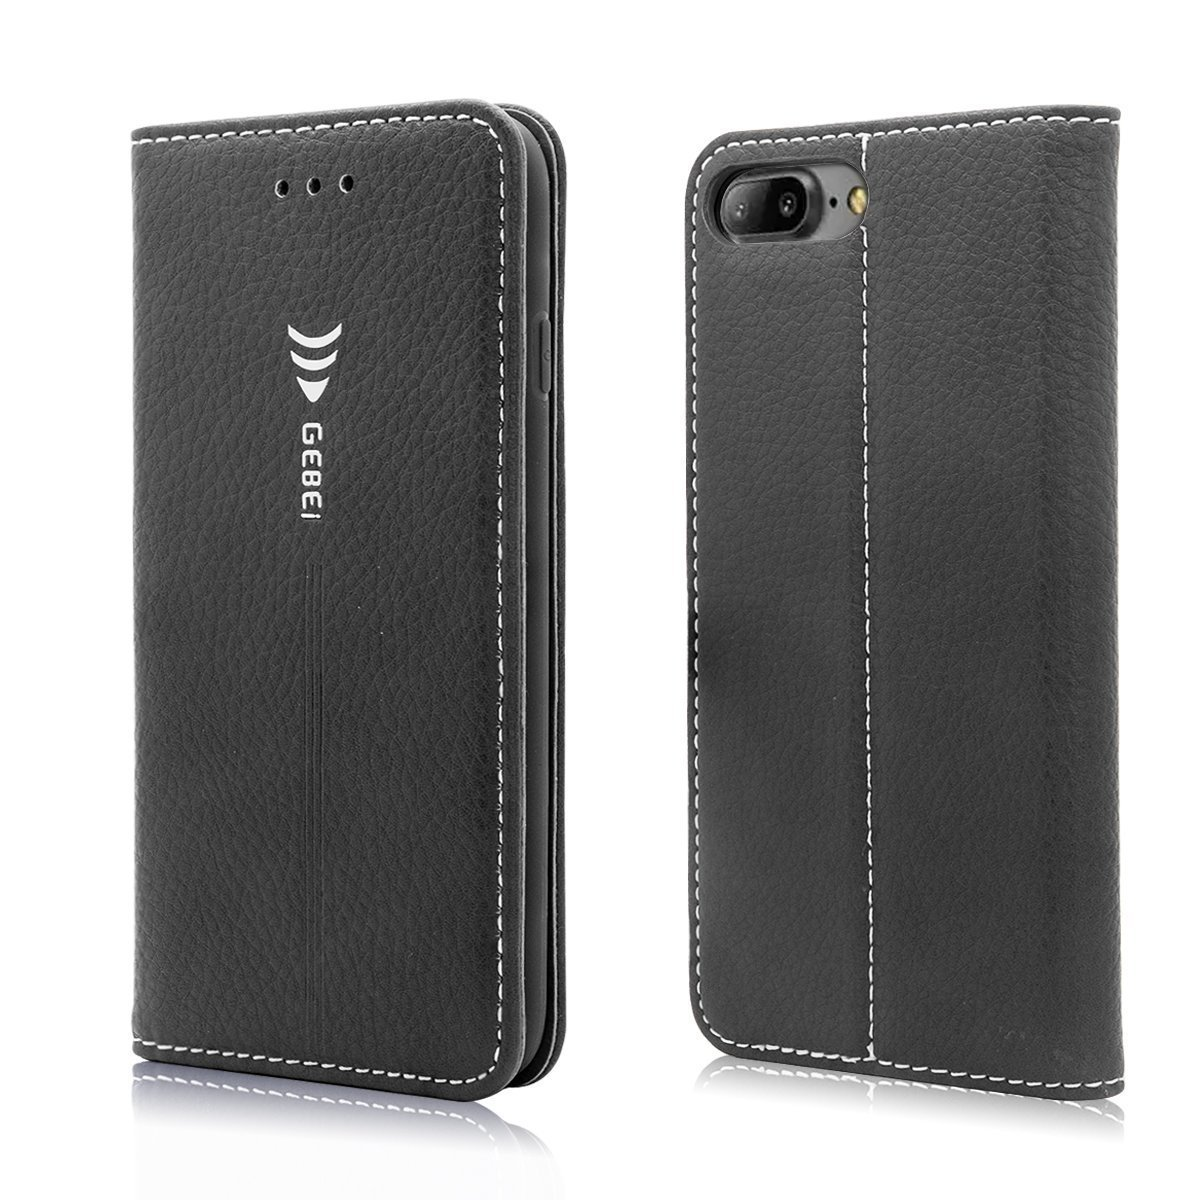 iPhone 7 Plus iPhone 8 Plus Case, Mignova Leather Case [Wallet] Flip Book Cover Design with Kickstand Function and ID Credit Card Slot, Magnetic Closure for iPhone 7 Plus iPhone 8 Plus (Black)